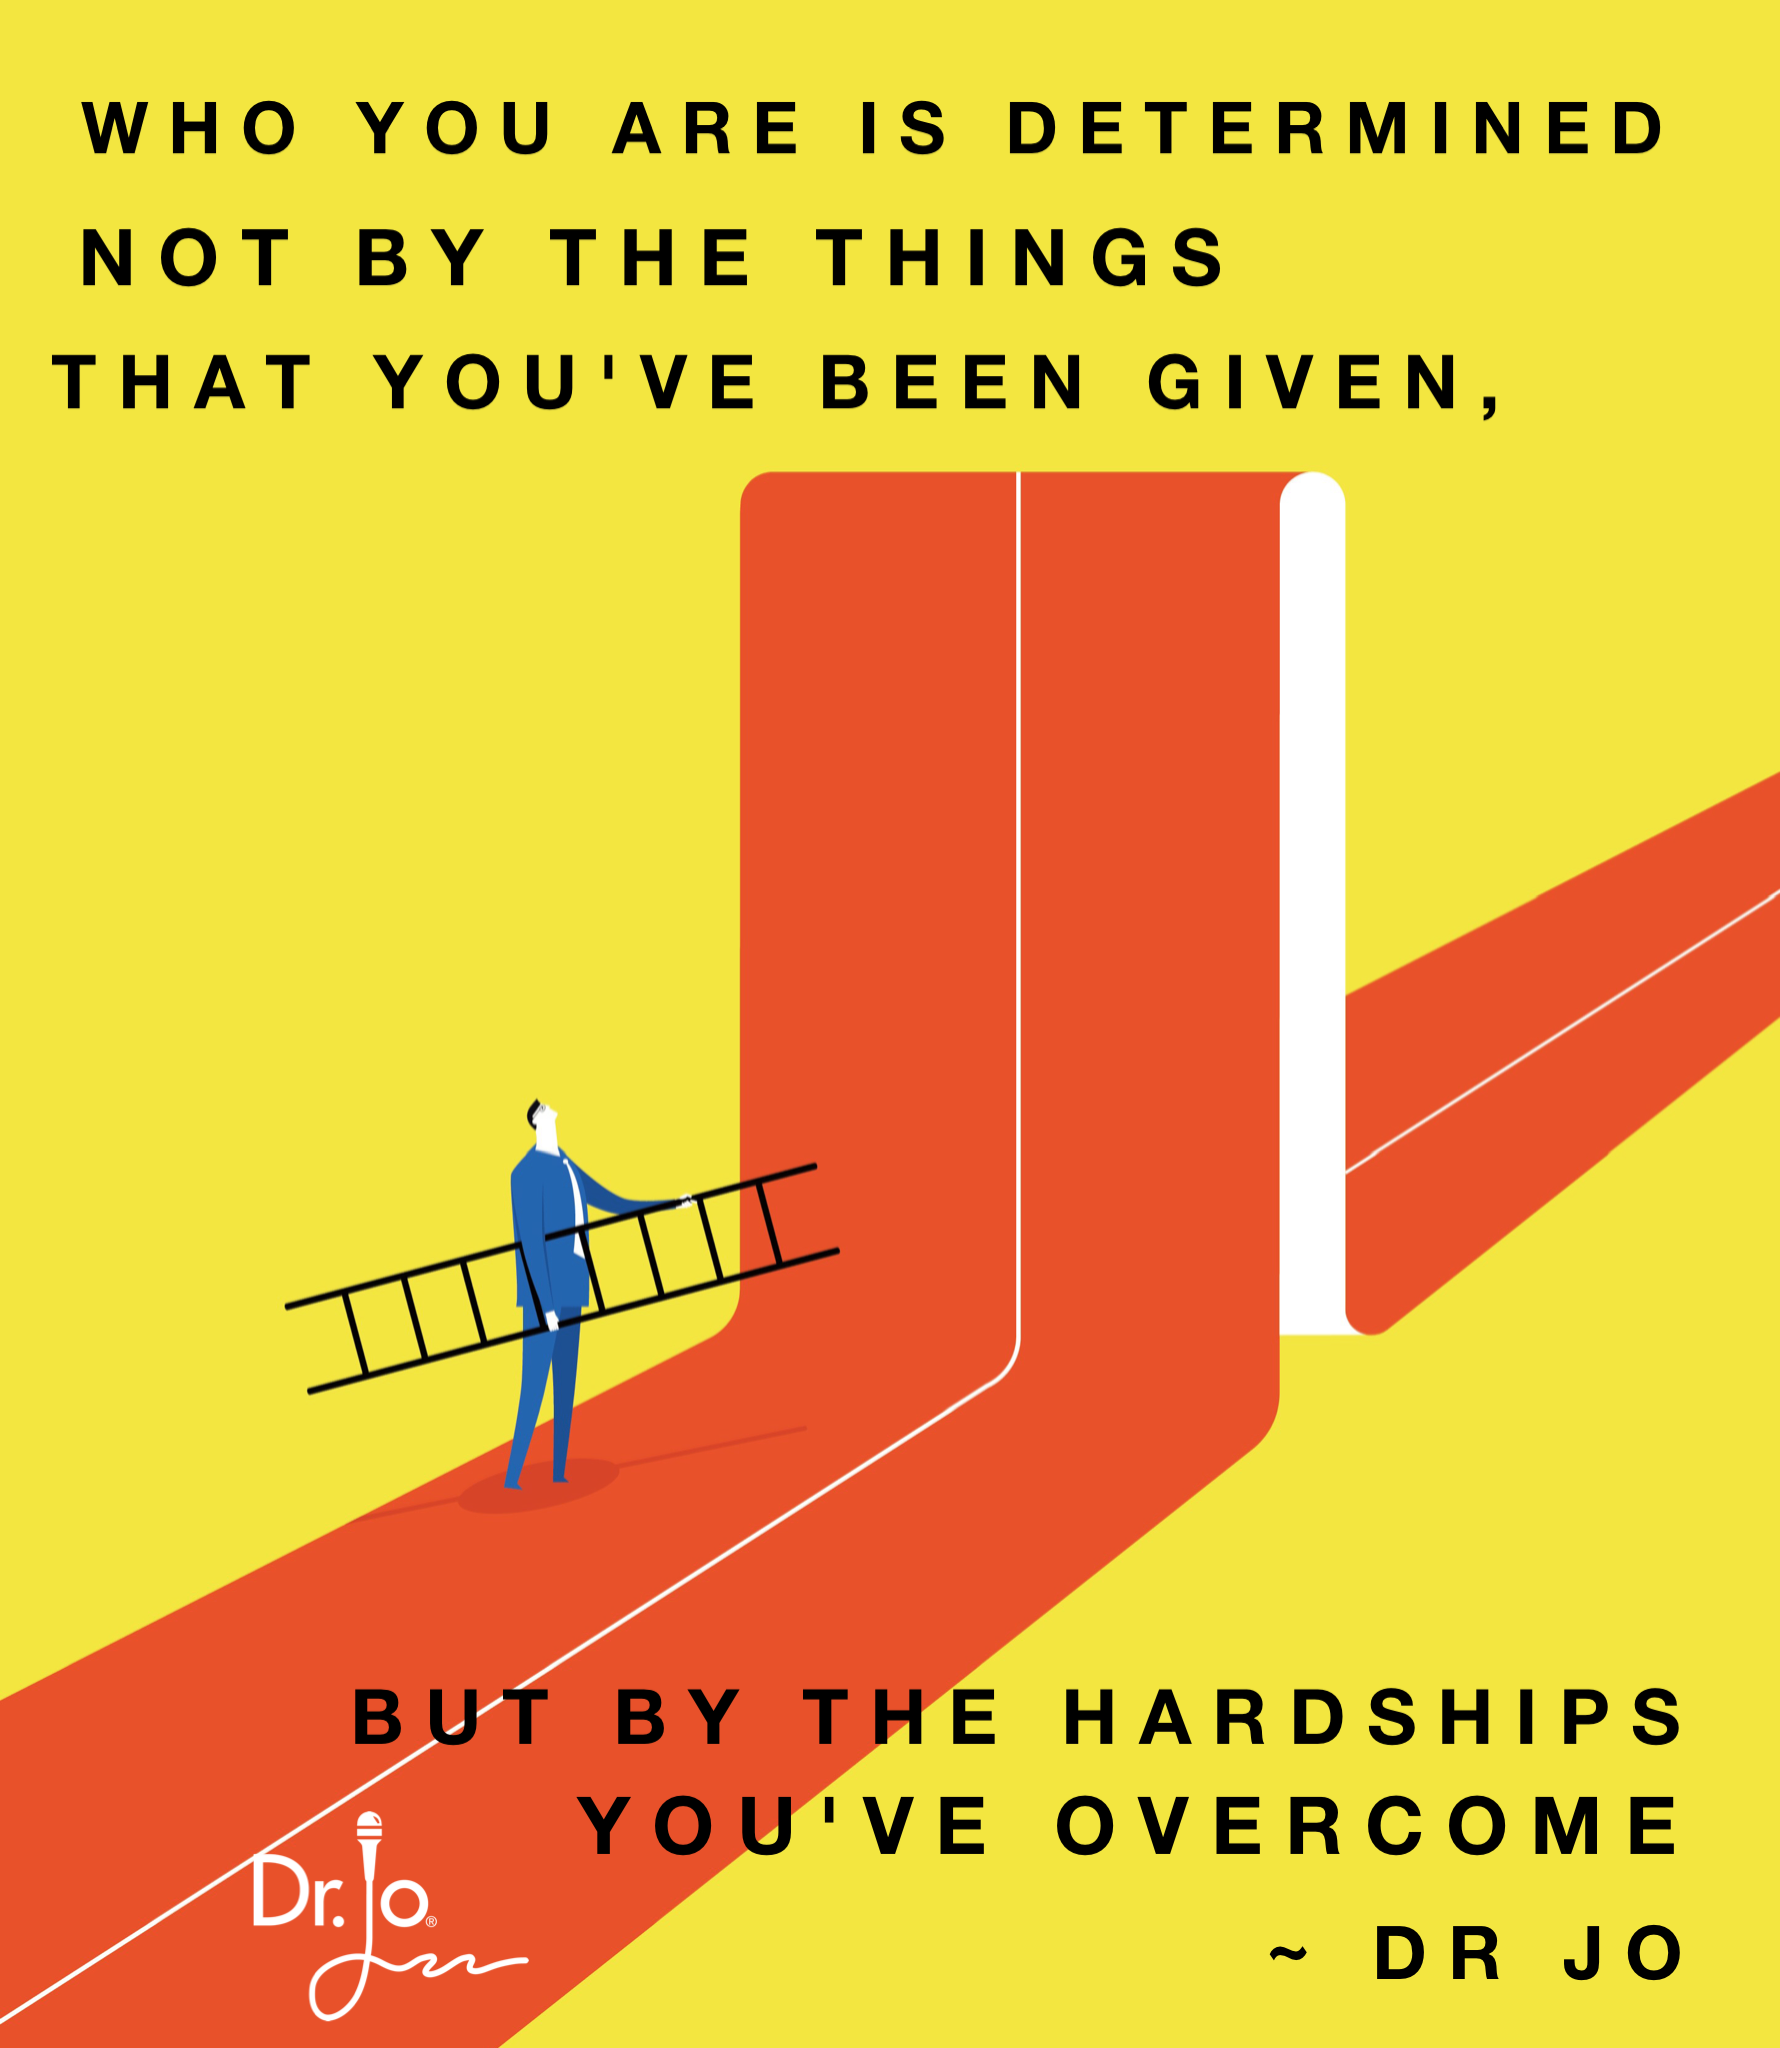 Who you are is determined NOT by the things you've been given, but by the hardships you've overcome.